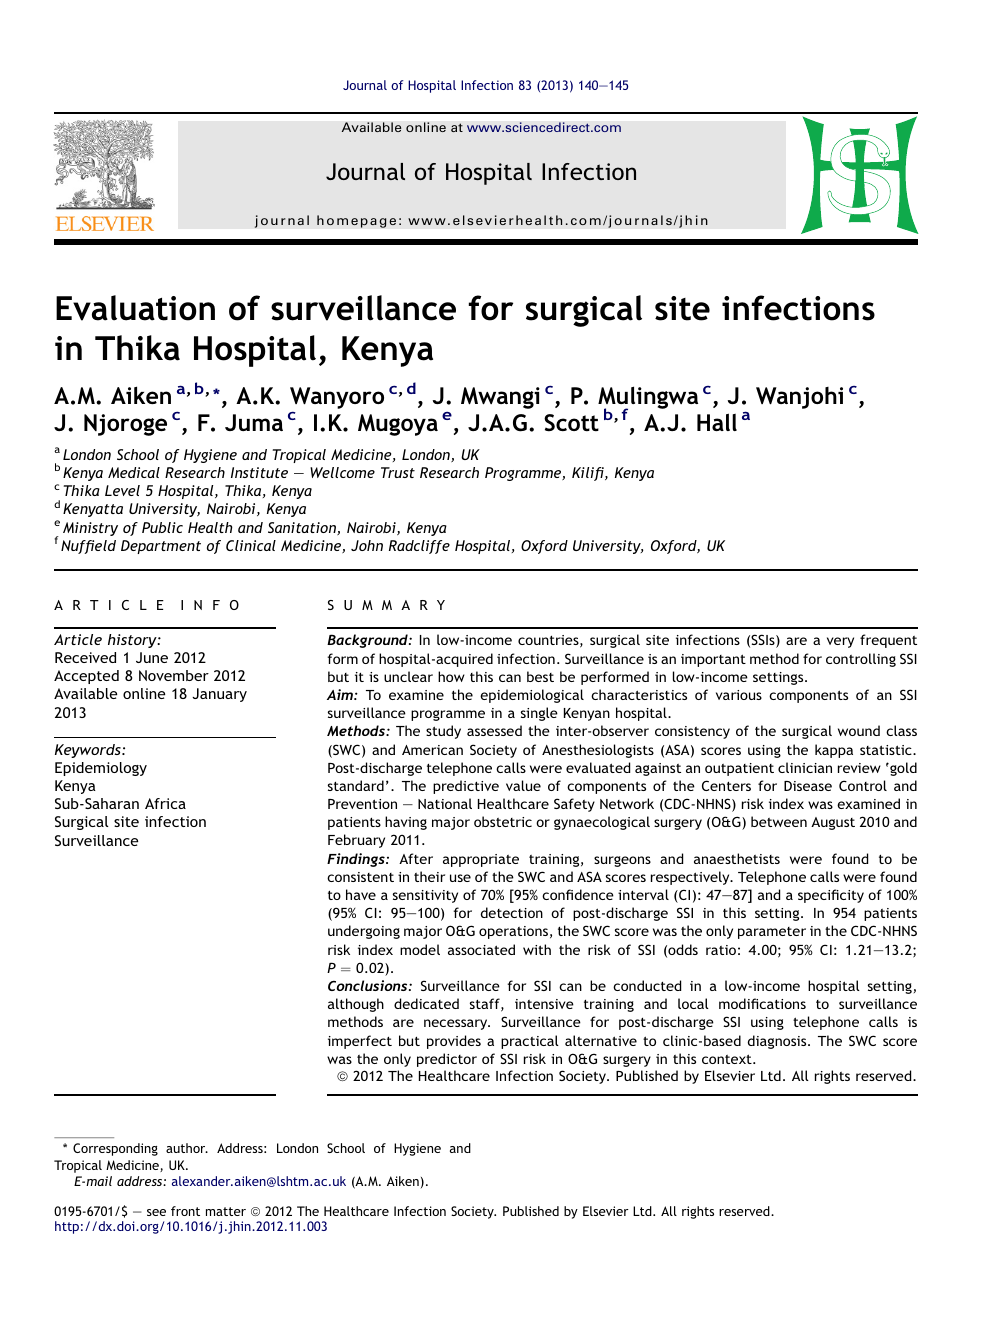 Evaluation of surveillance for surgical site infections in